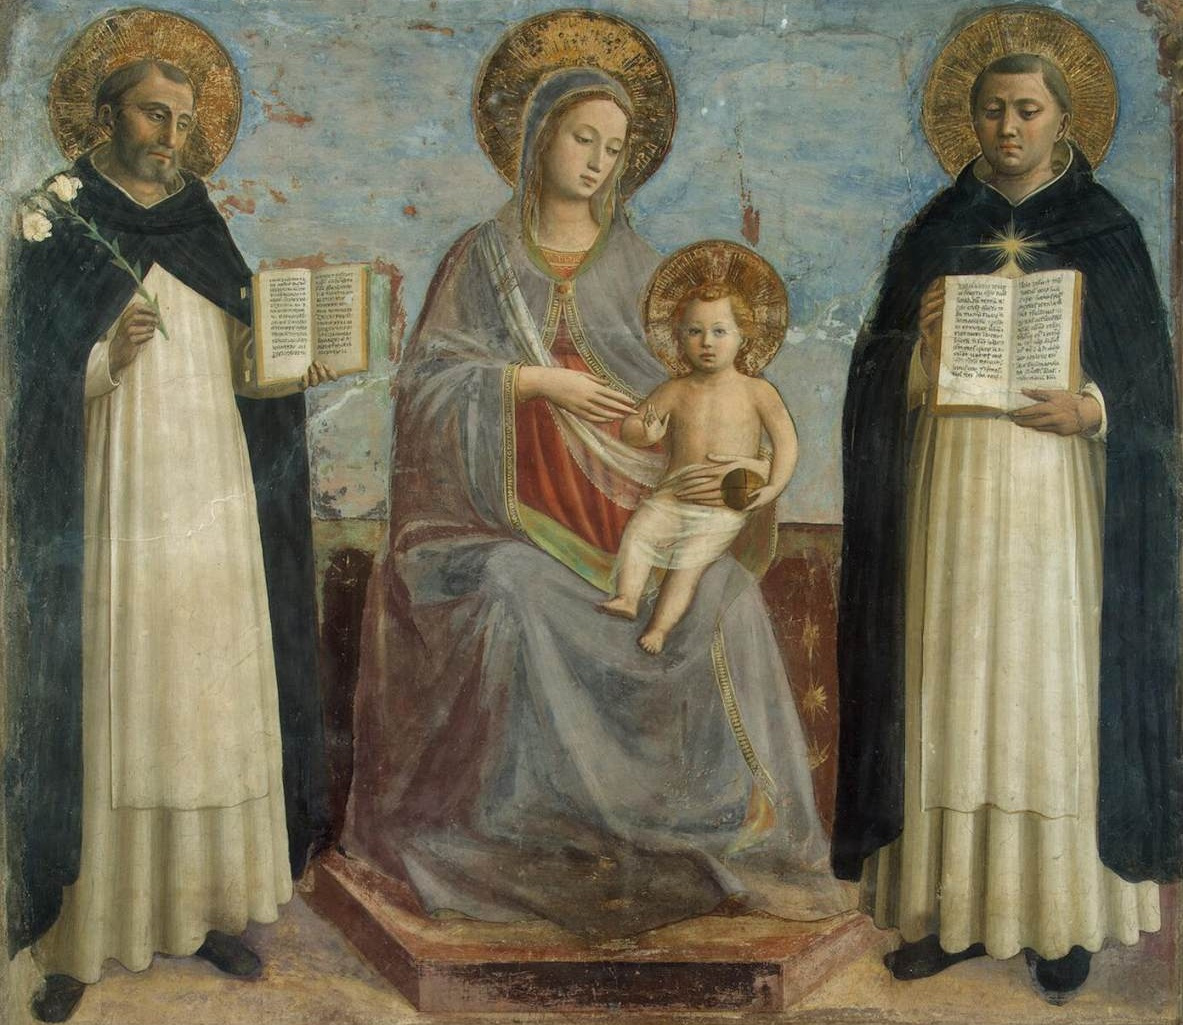 St Thomas with St Dominic and Virgin and Child by Fra Angelico